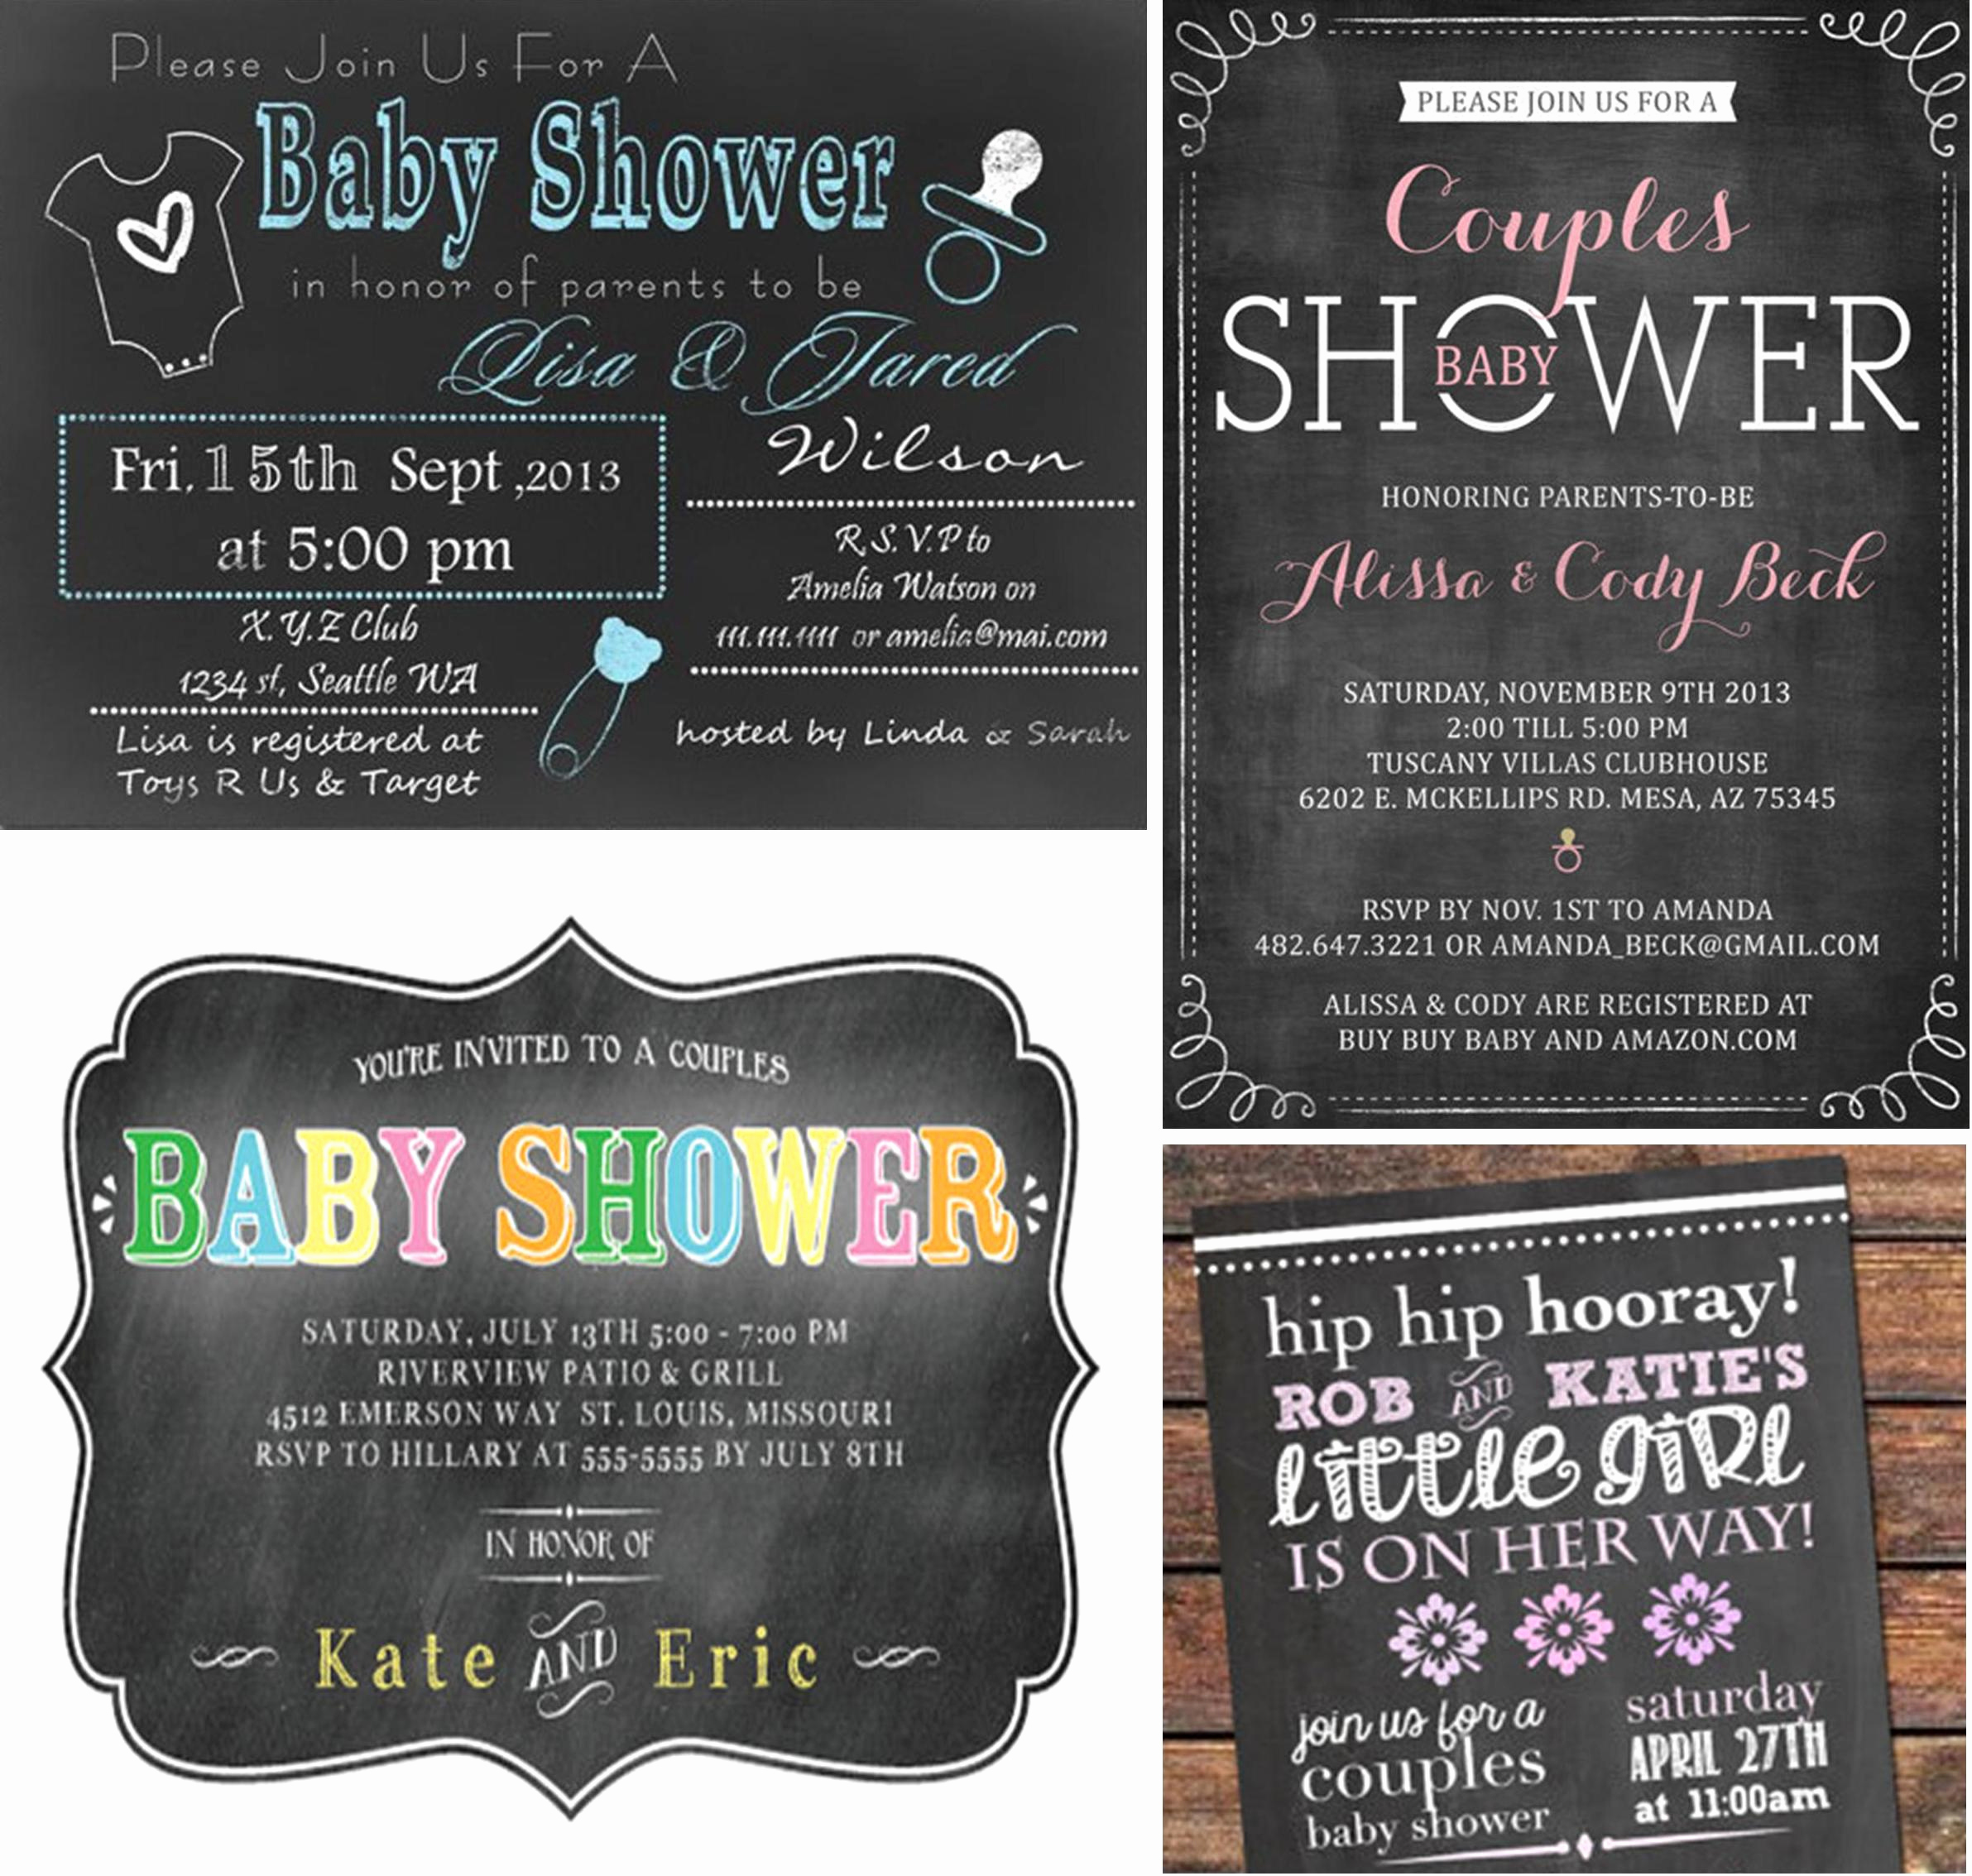 Couple Baby Shower Invitation Wording Awesome Couples Baby Shower Invitations